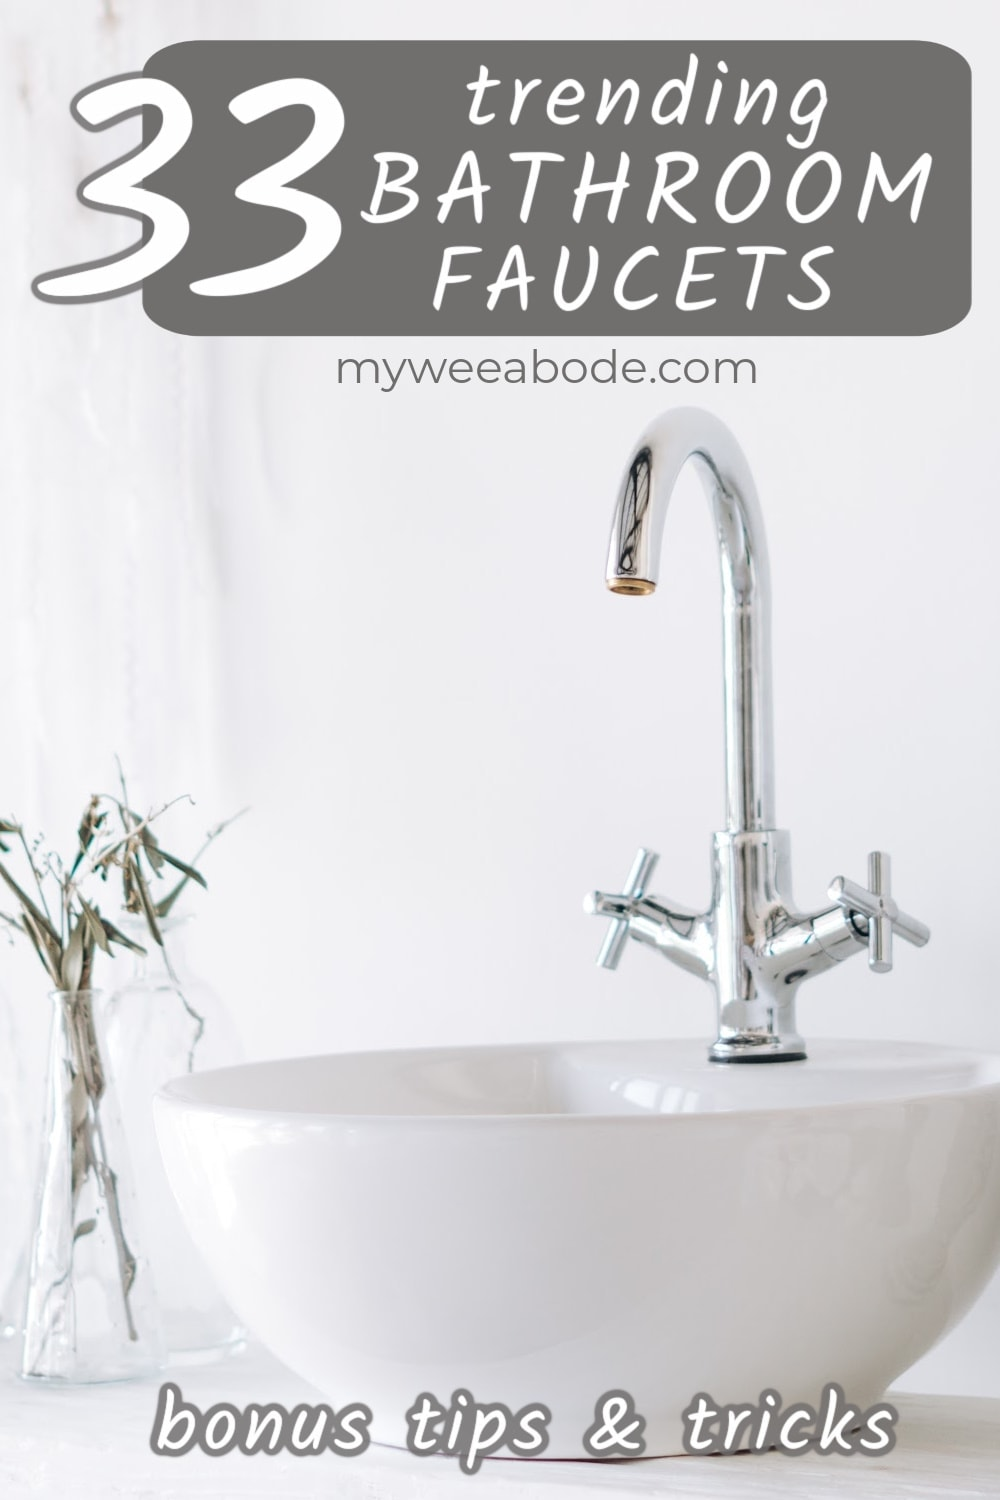 trending bathroom faucets buying guide sink with chrome faucet and vases with flowers